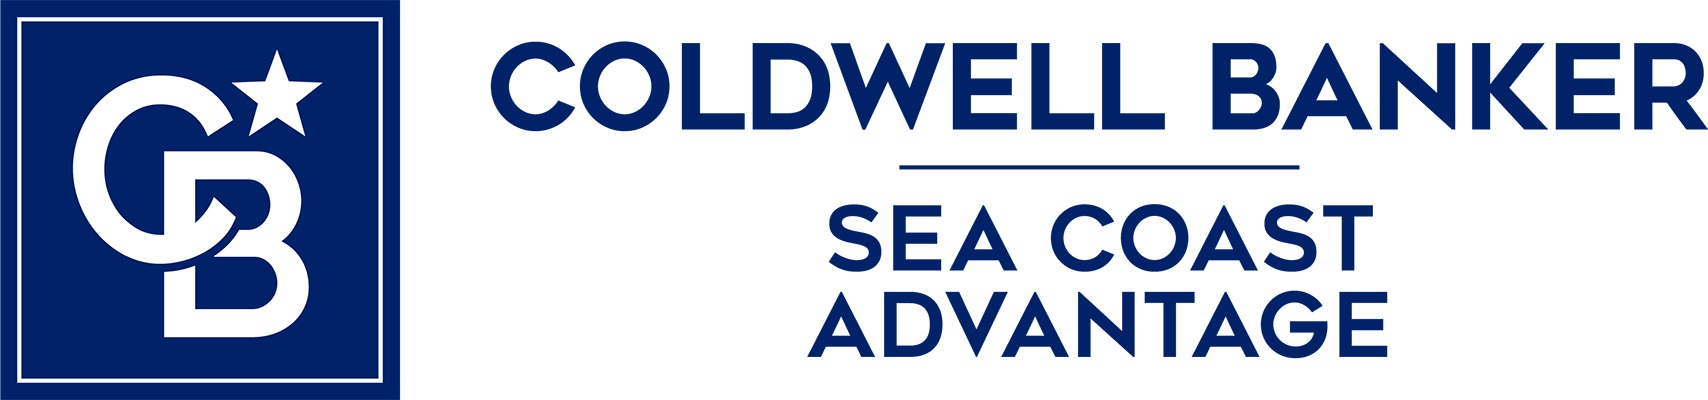 Sandra Lewis - Coldwell Banker Sea Coast Advantage Realty